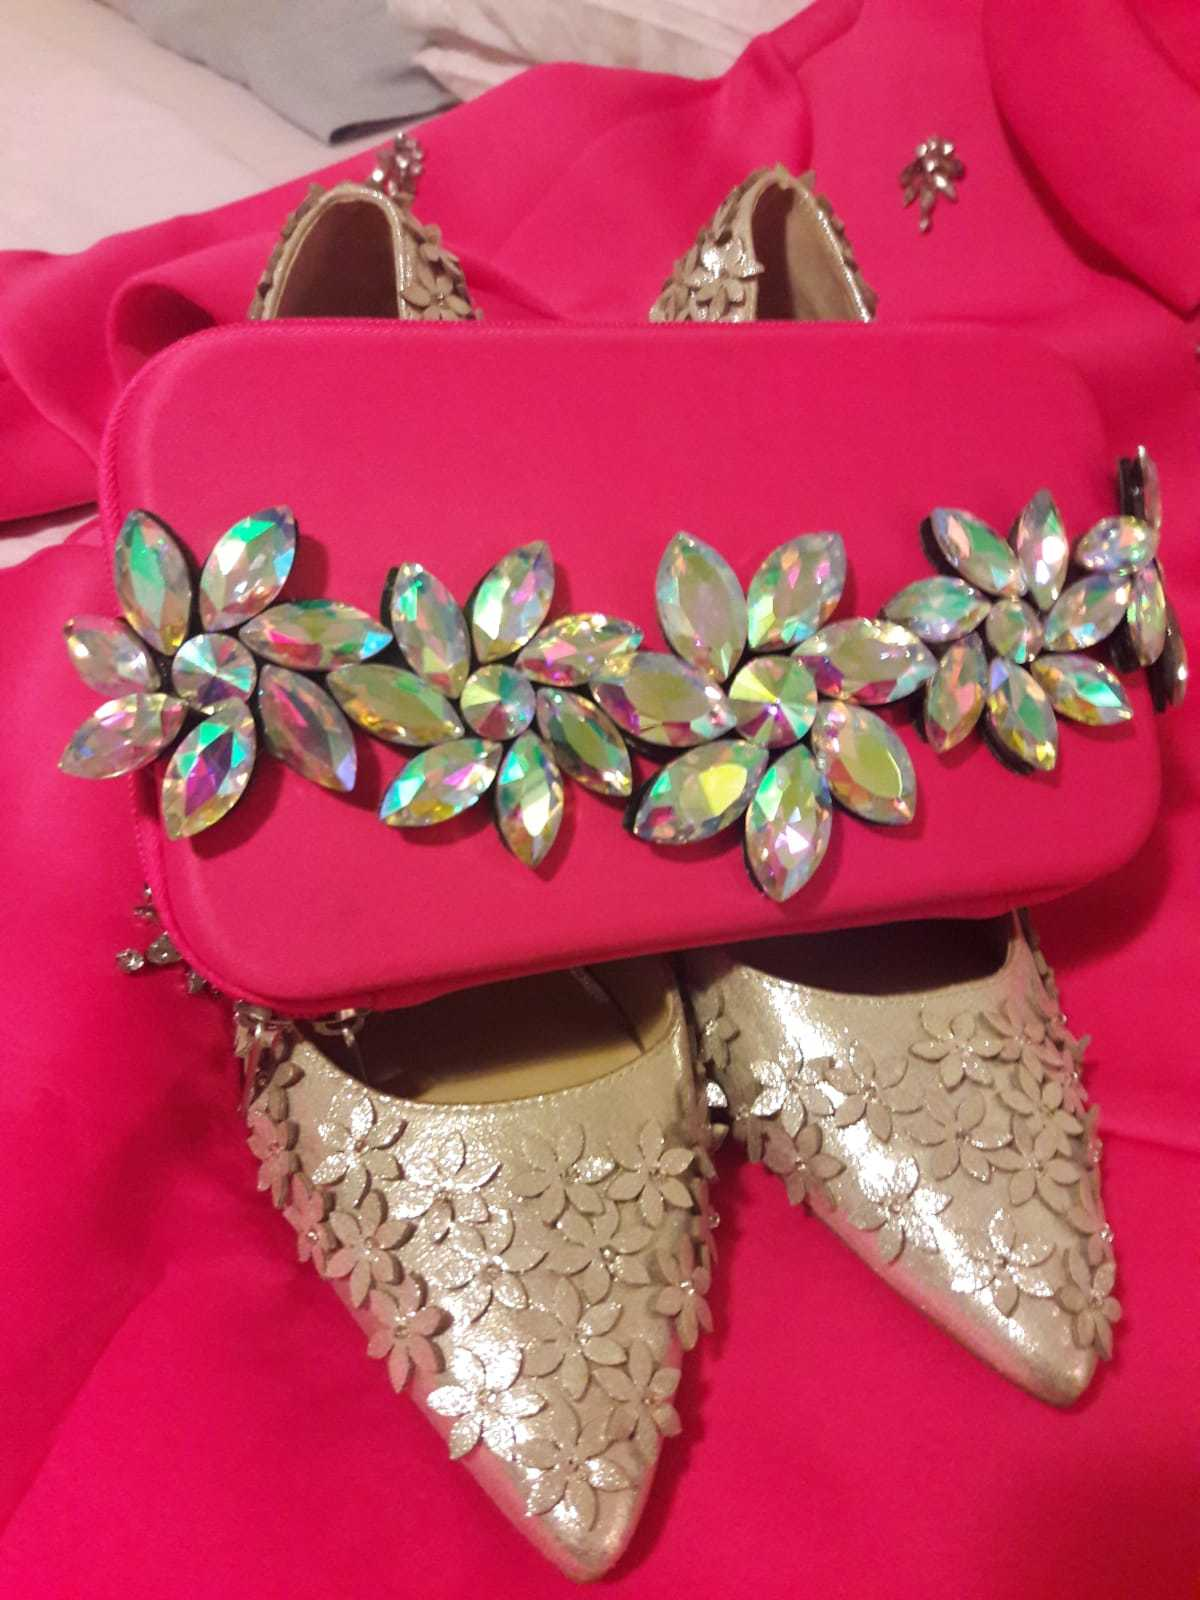 Pink dress and matching clutch and shoes